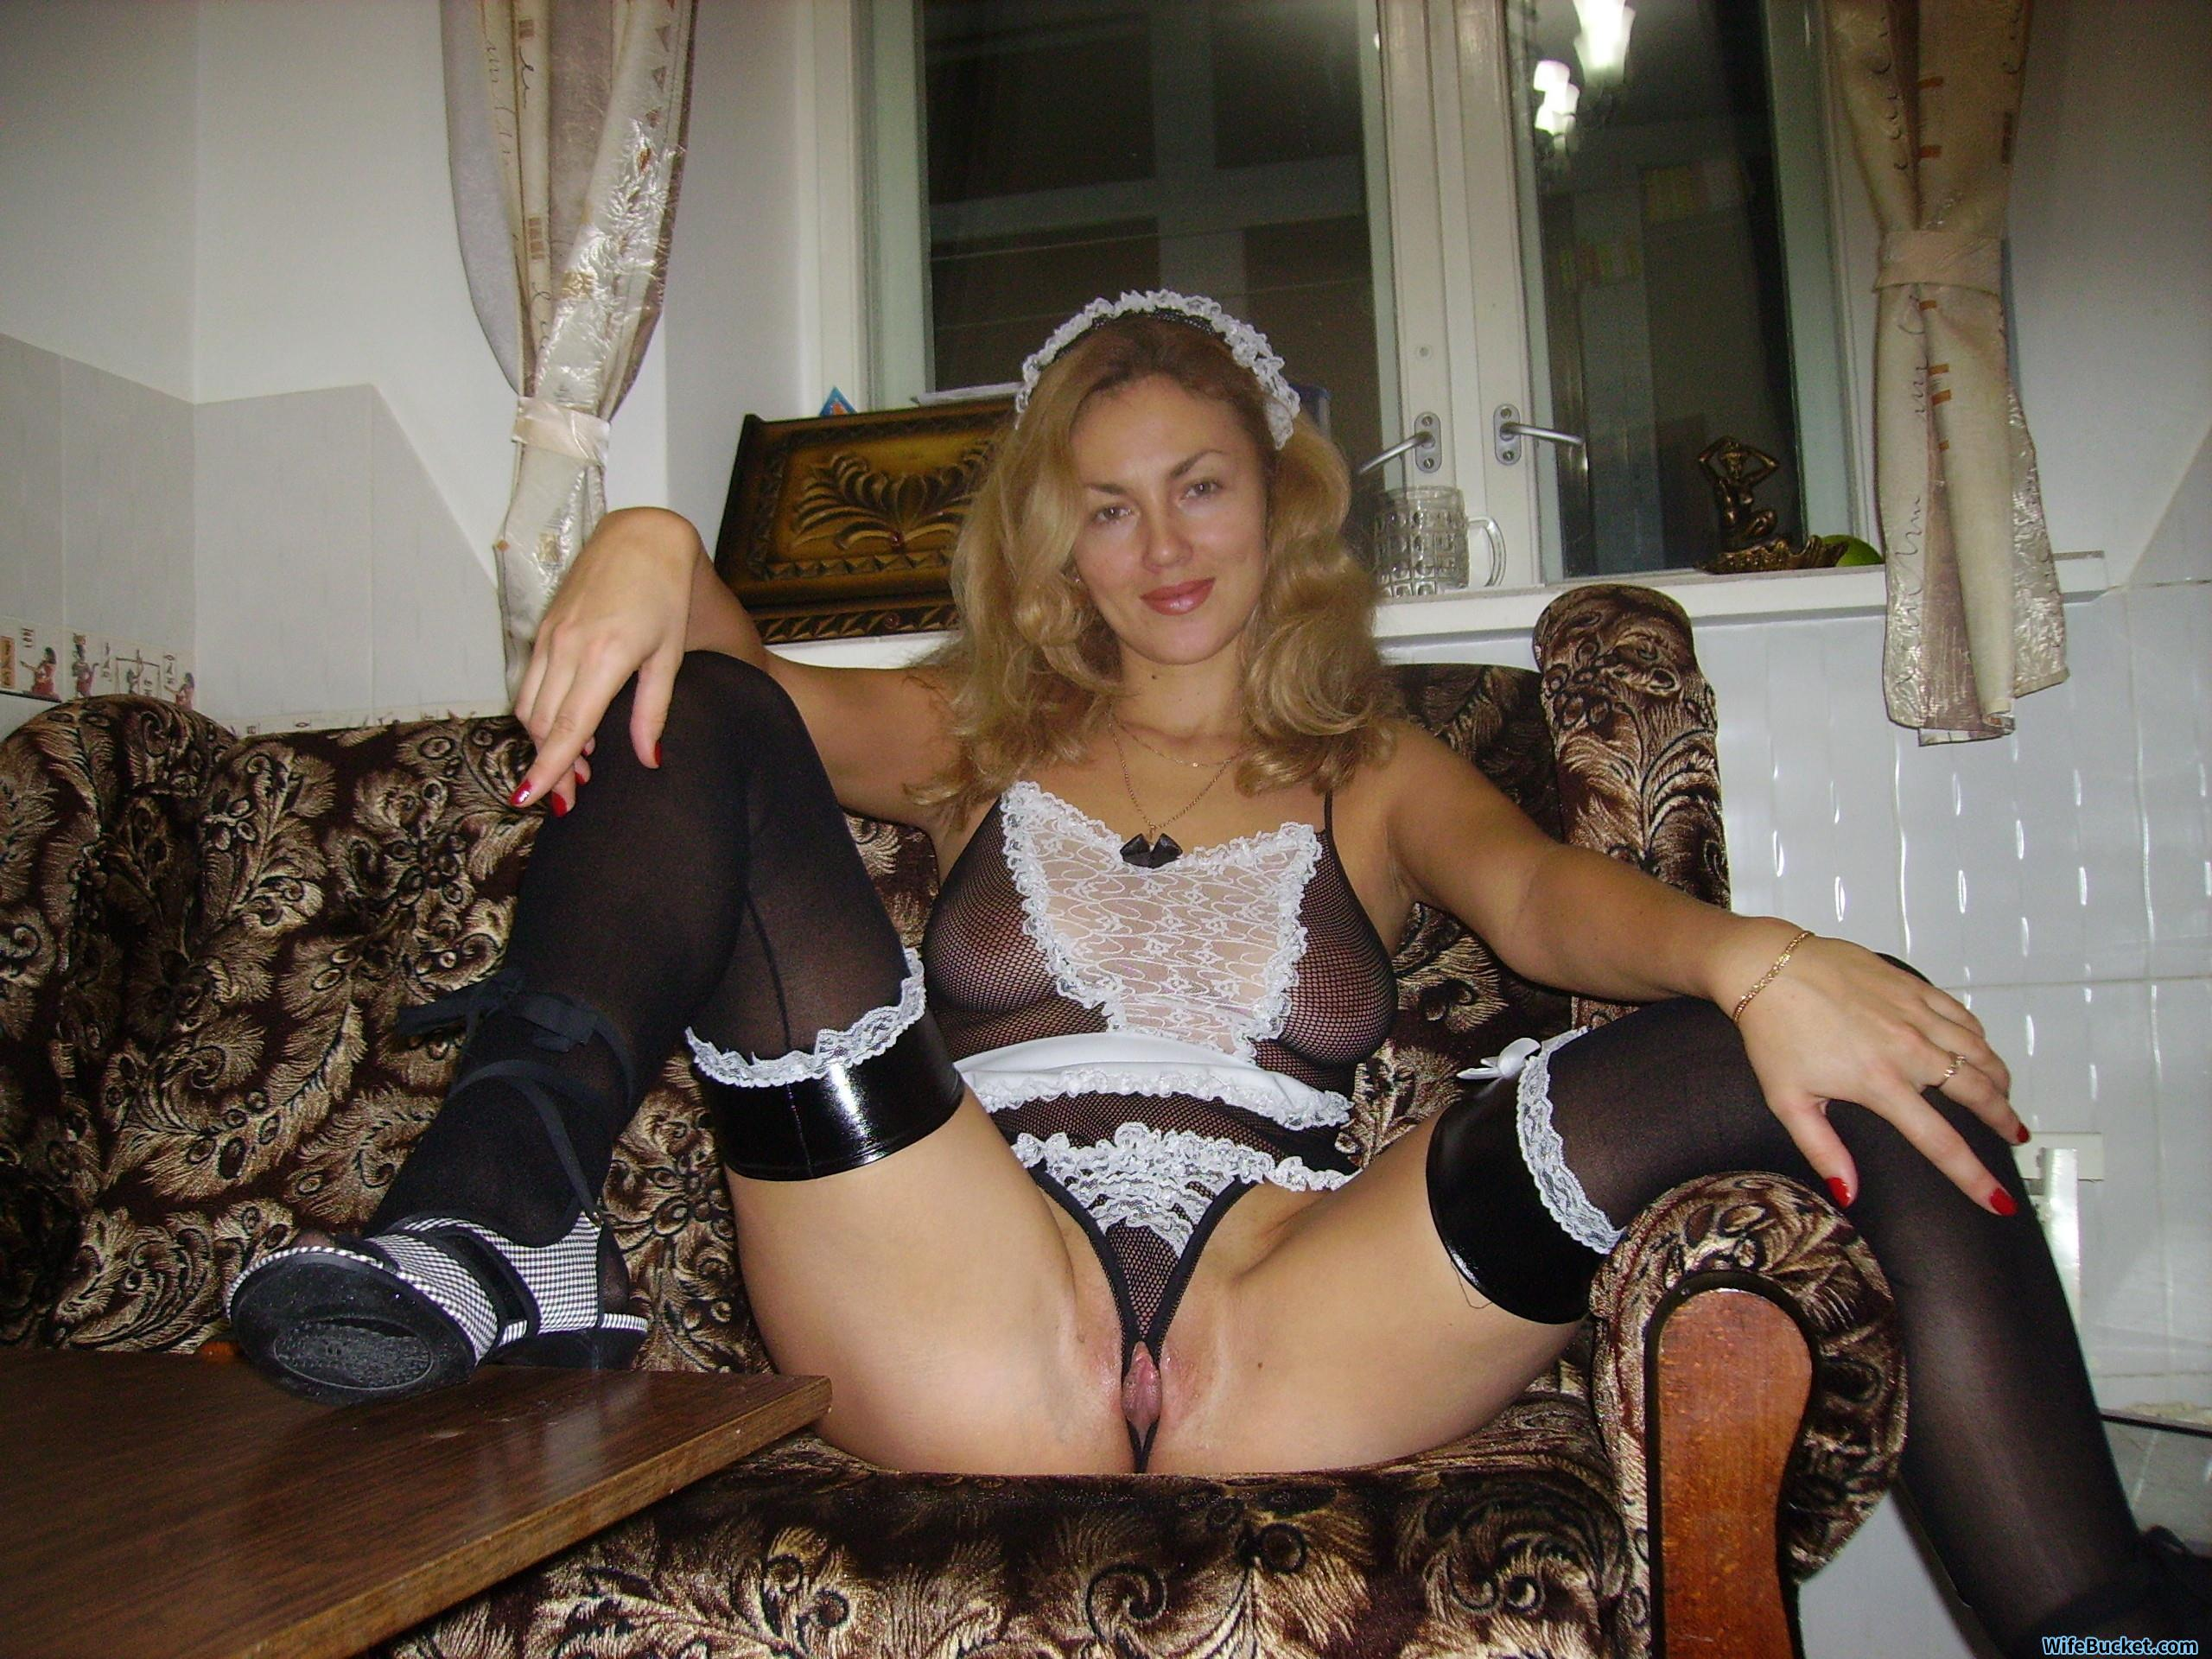 Agree, this sexy french maid uniform too